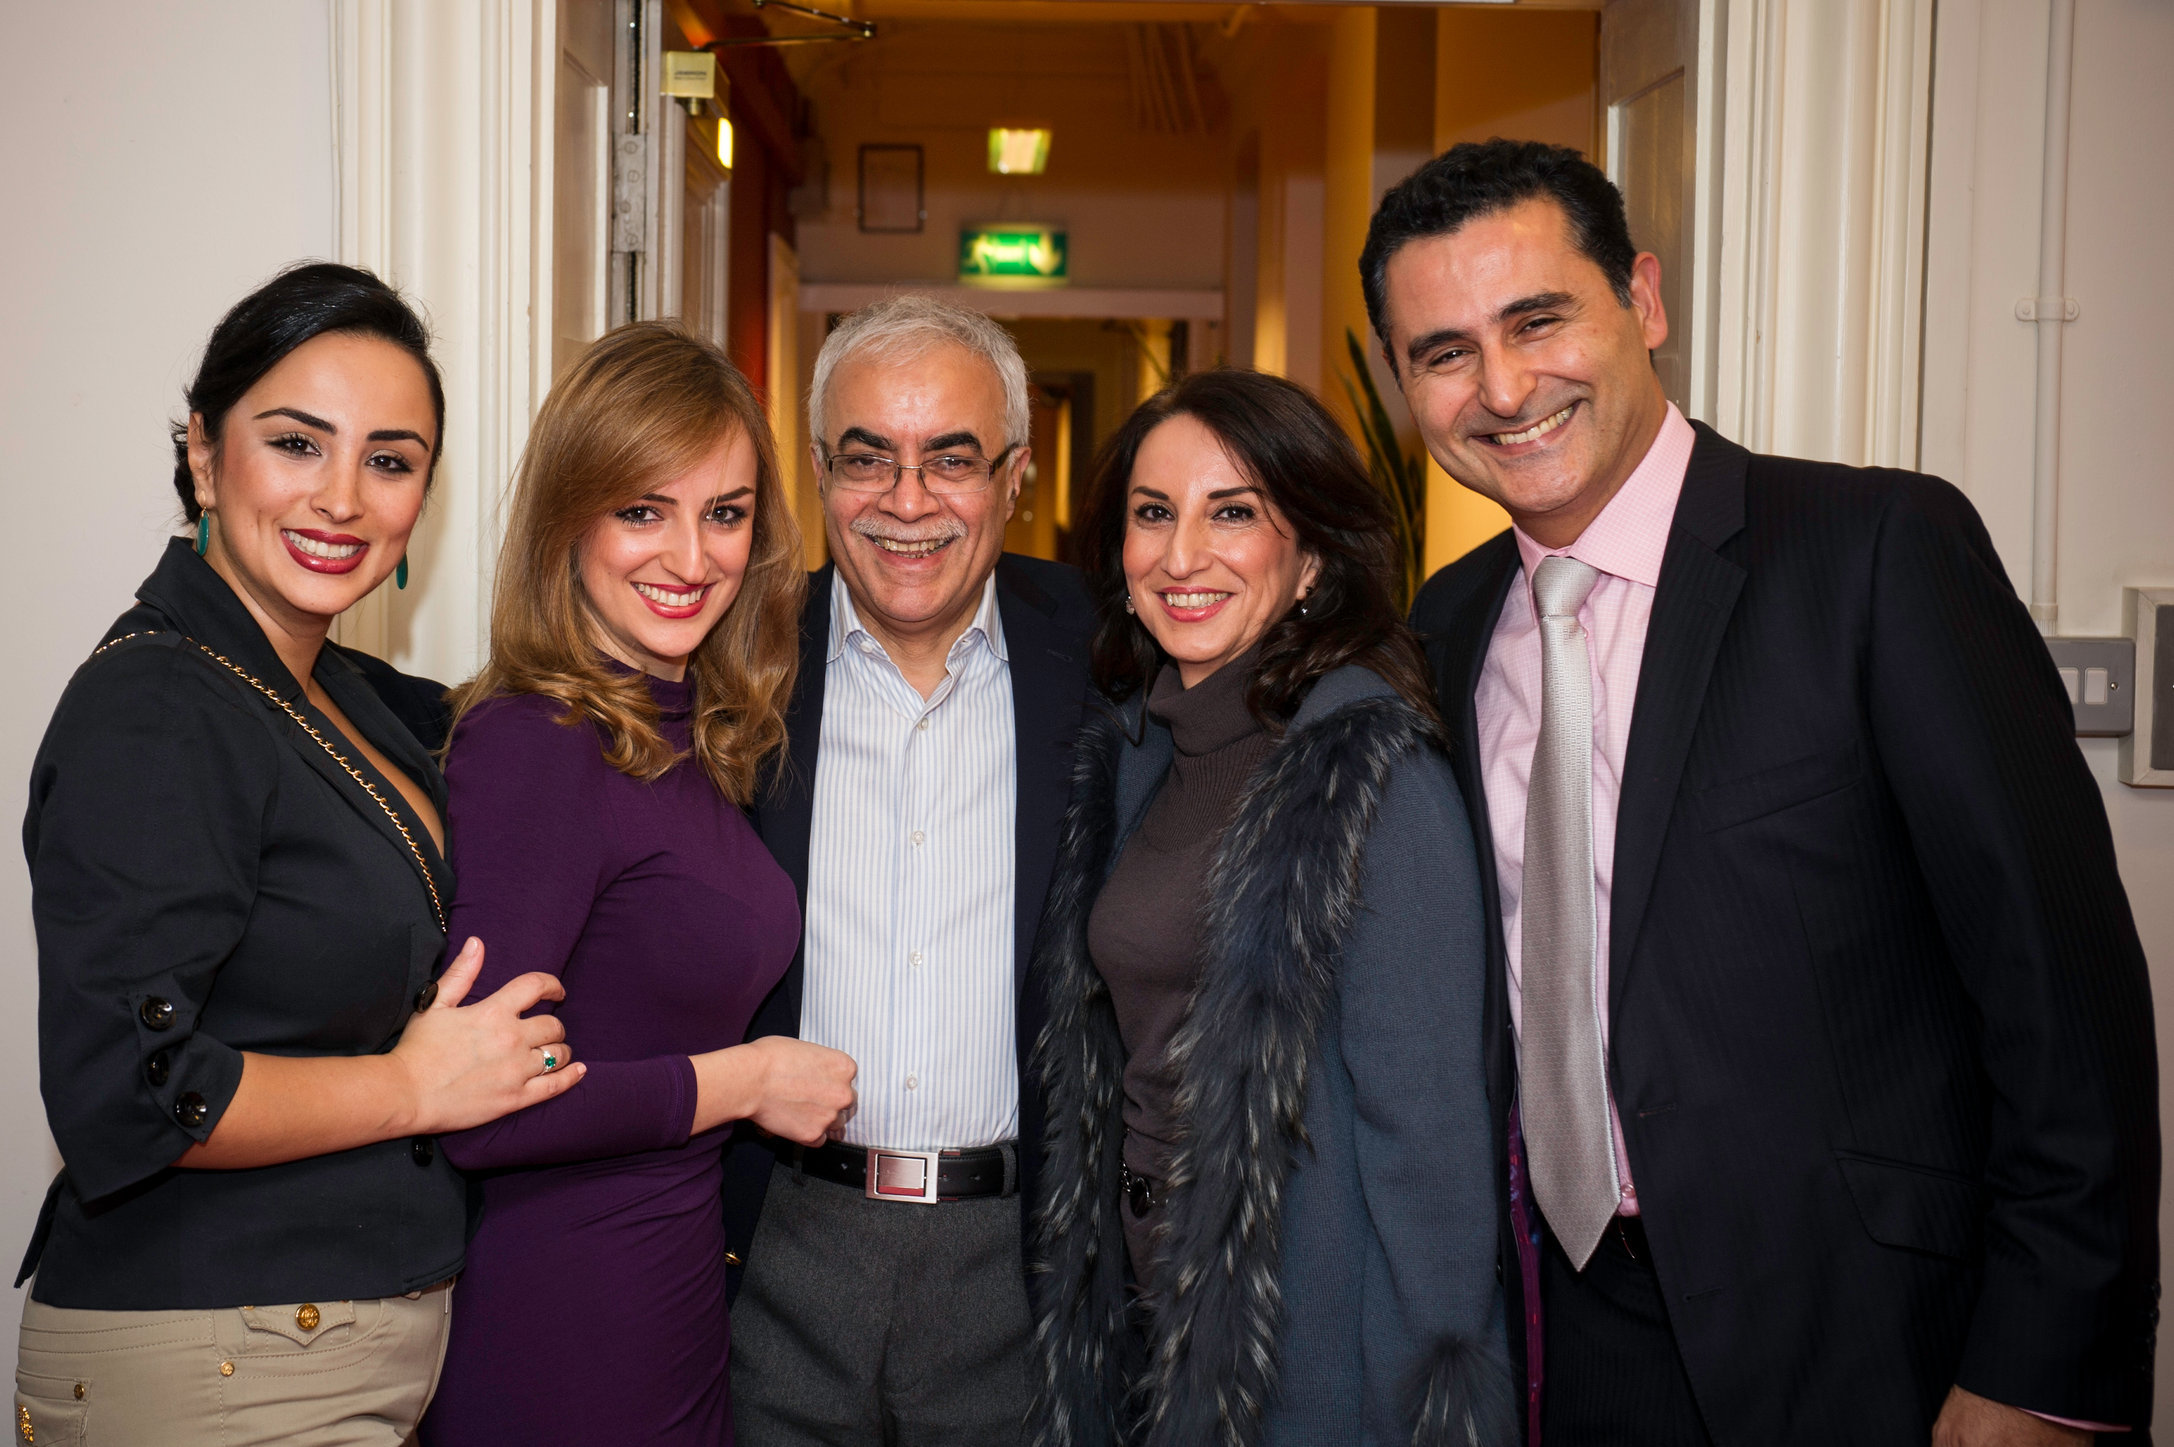 Ludovic_Robert_Photographer_Aneveningwith_Shohreh_Aghdashloo_November_2013-20131128-0020.jpg